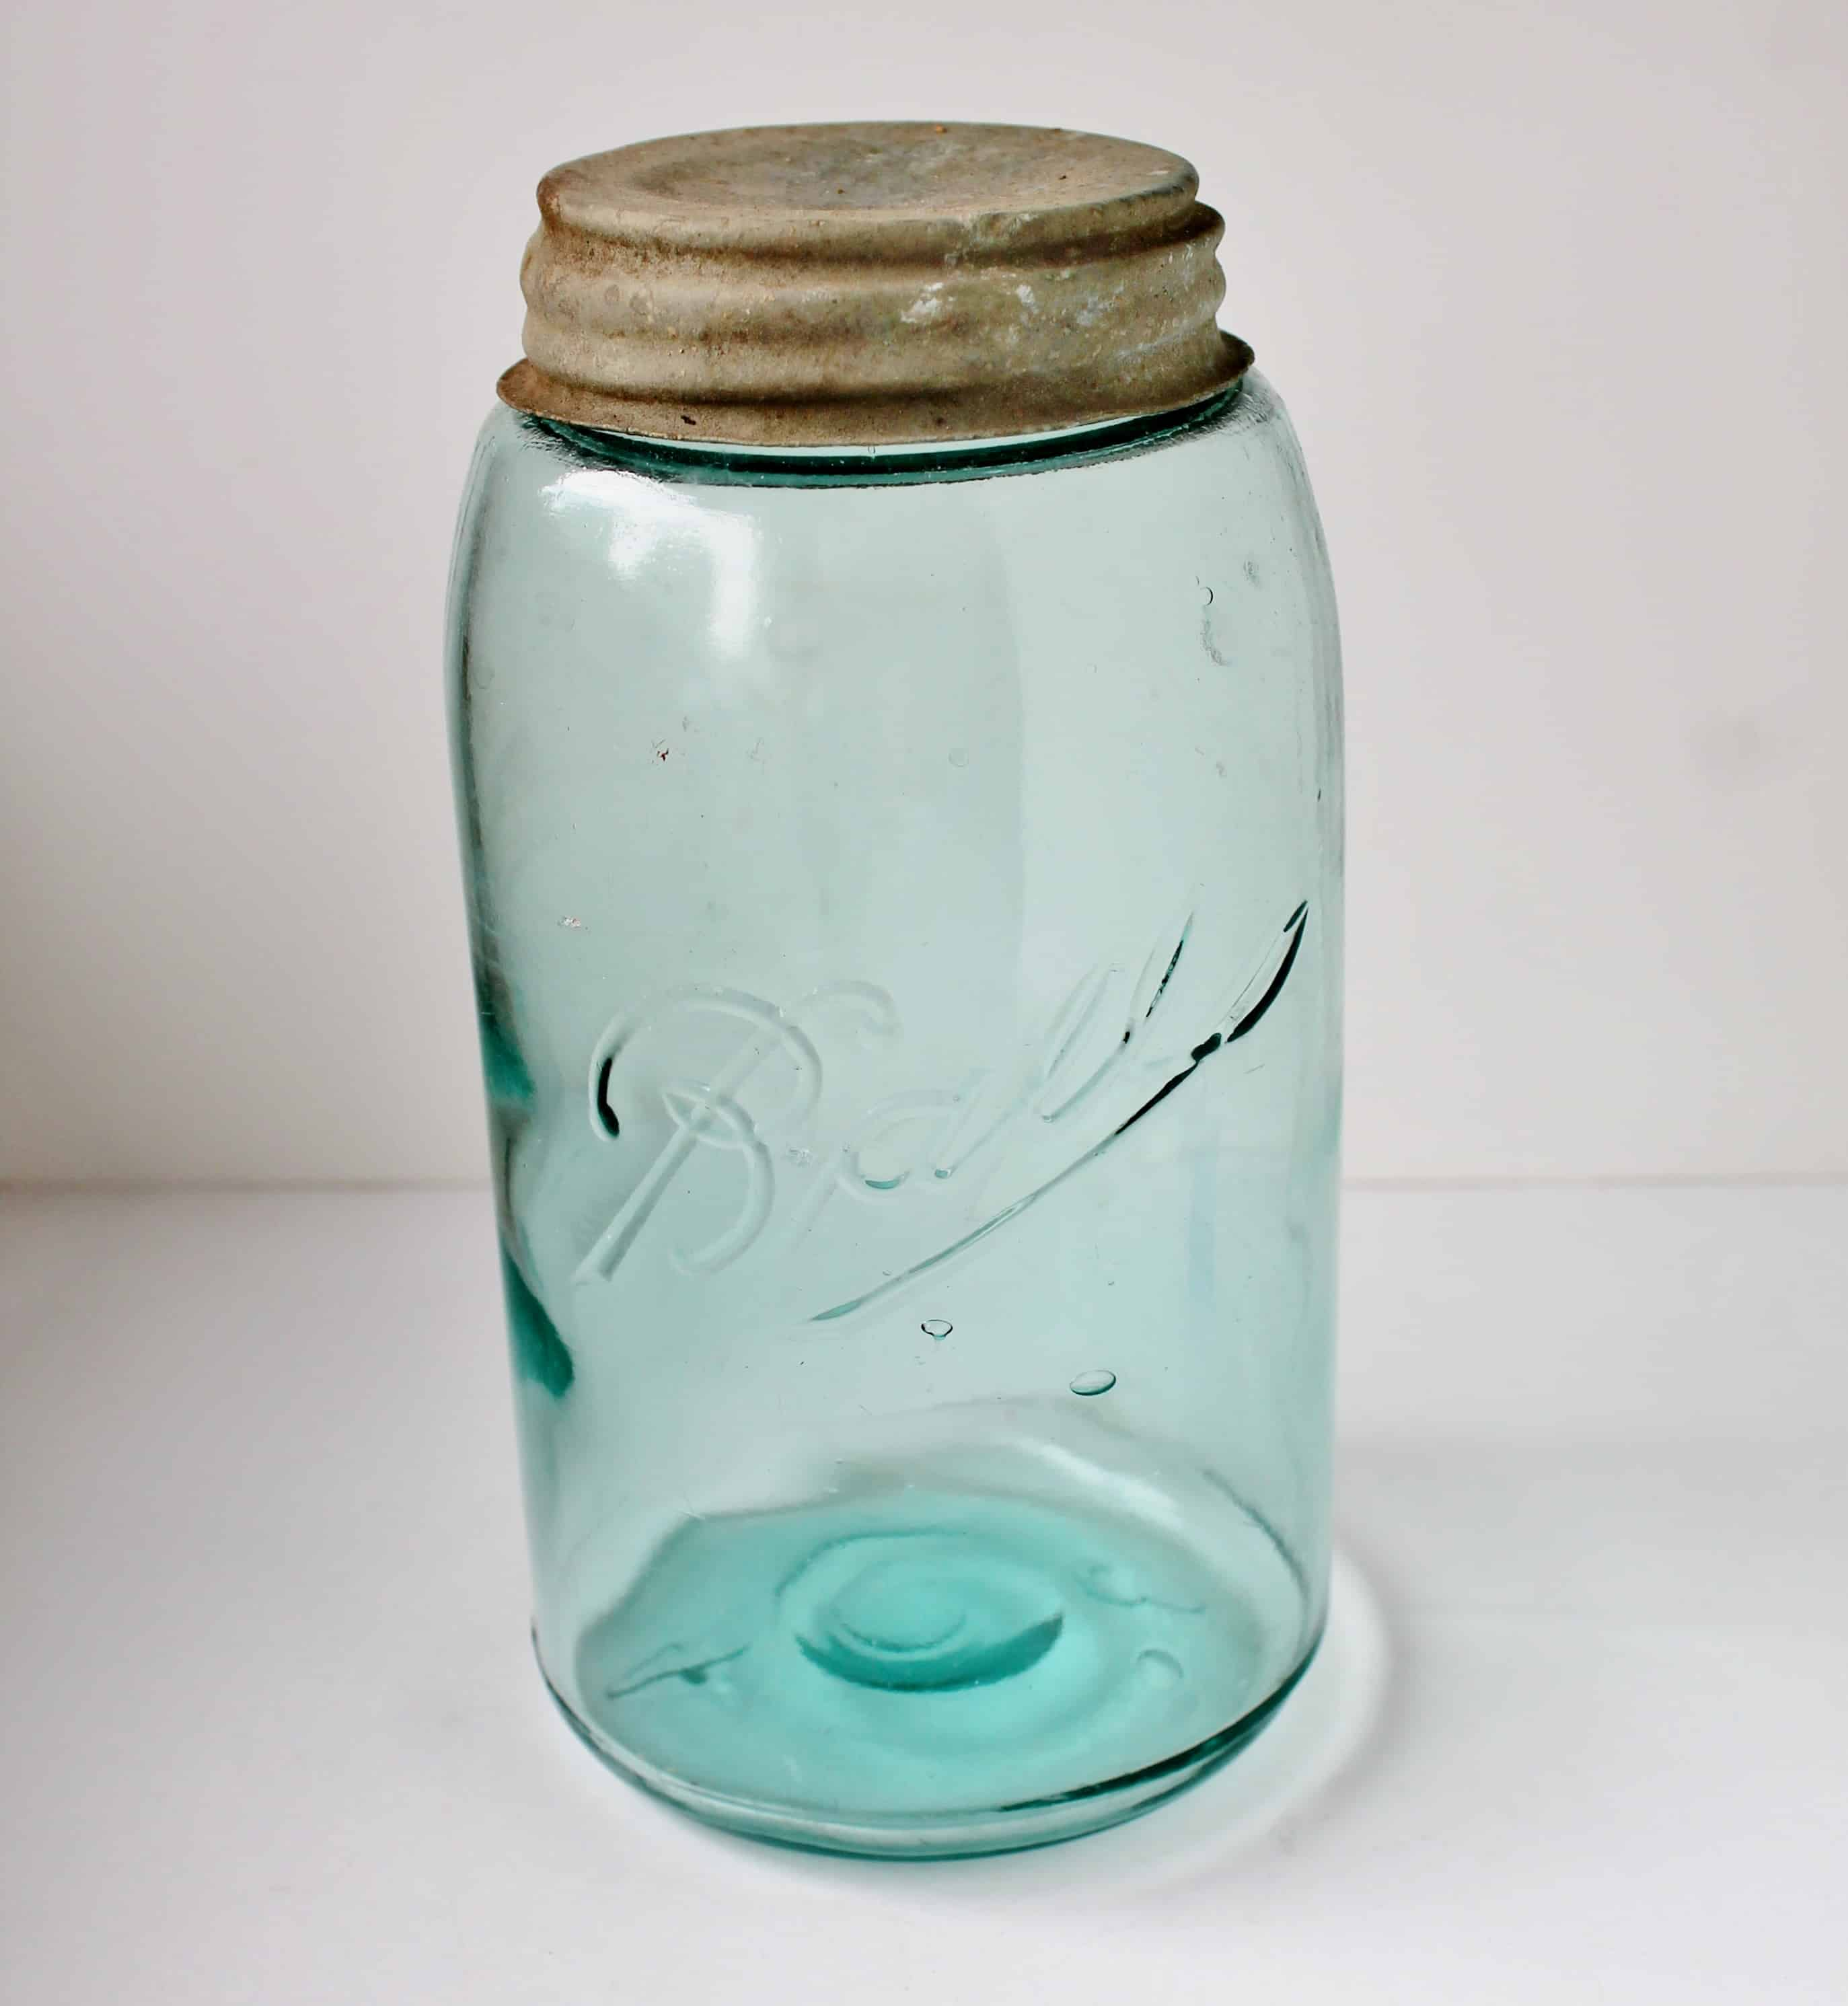 Dating antique ball canning jars